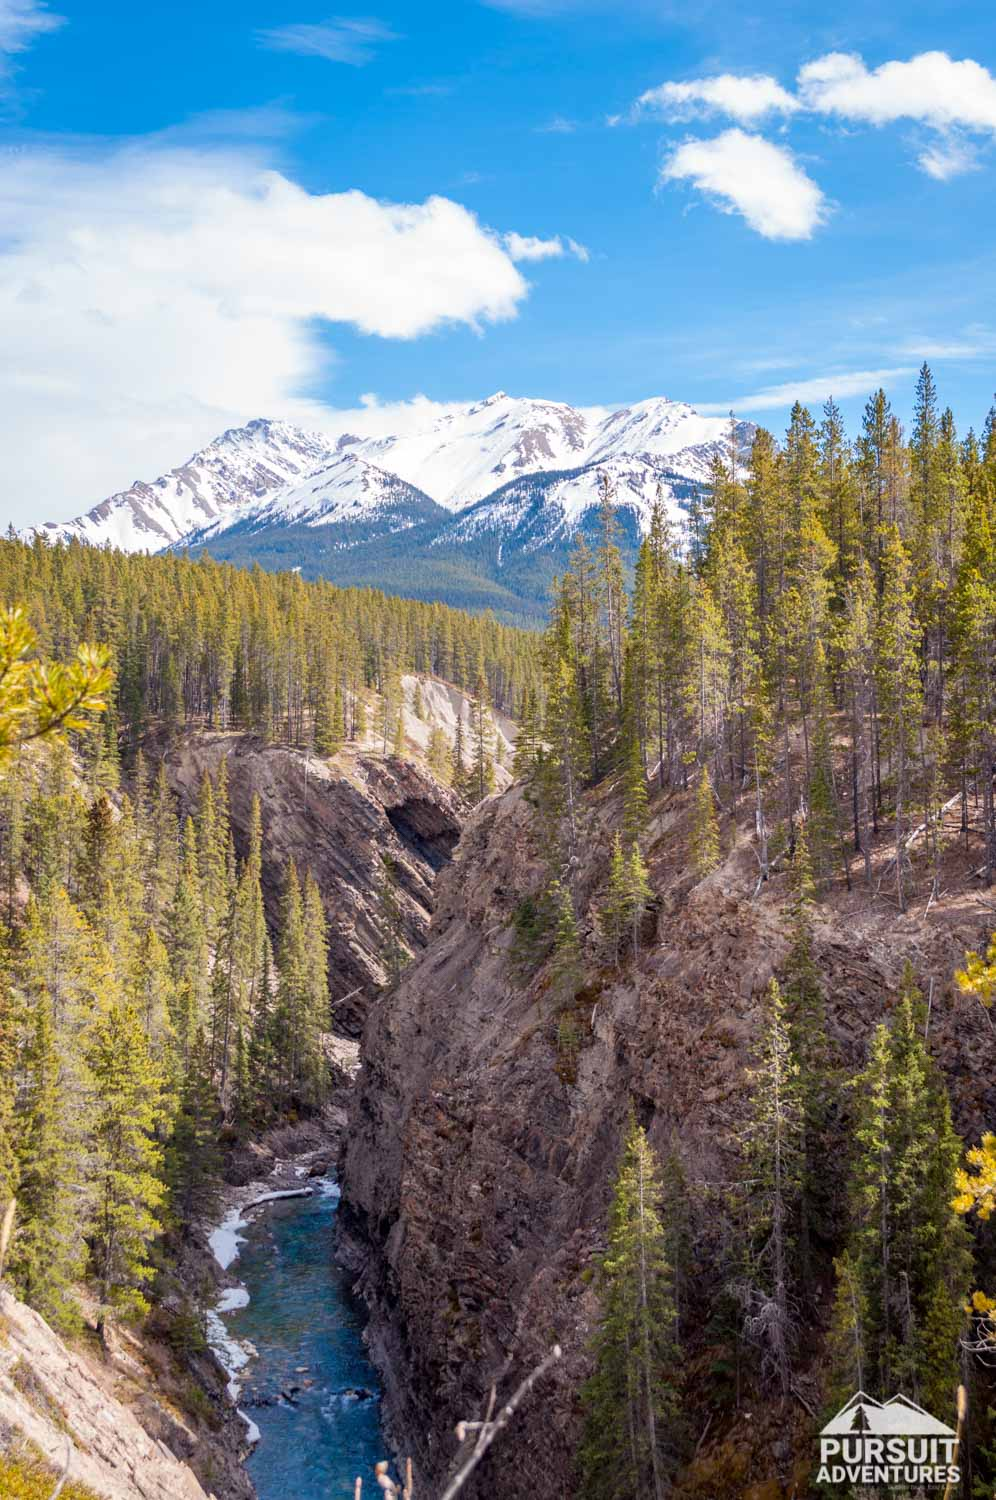 Siffleur River - Third Falls and Wilderness Area Access